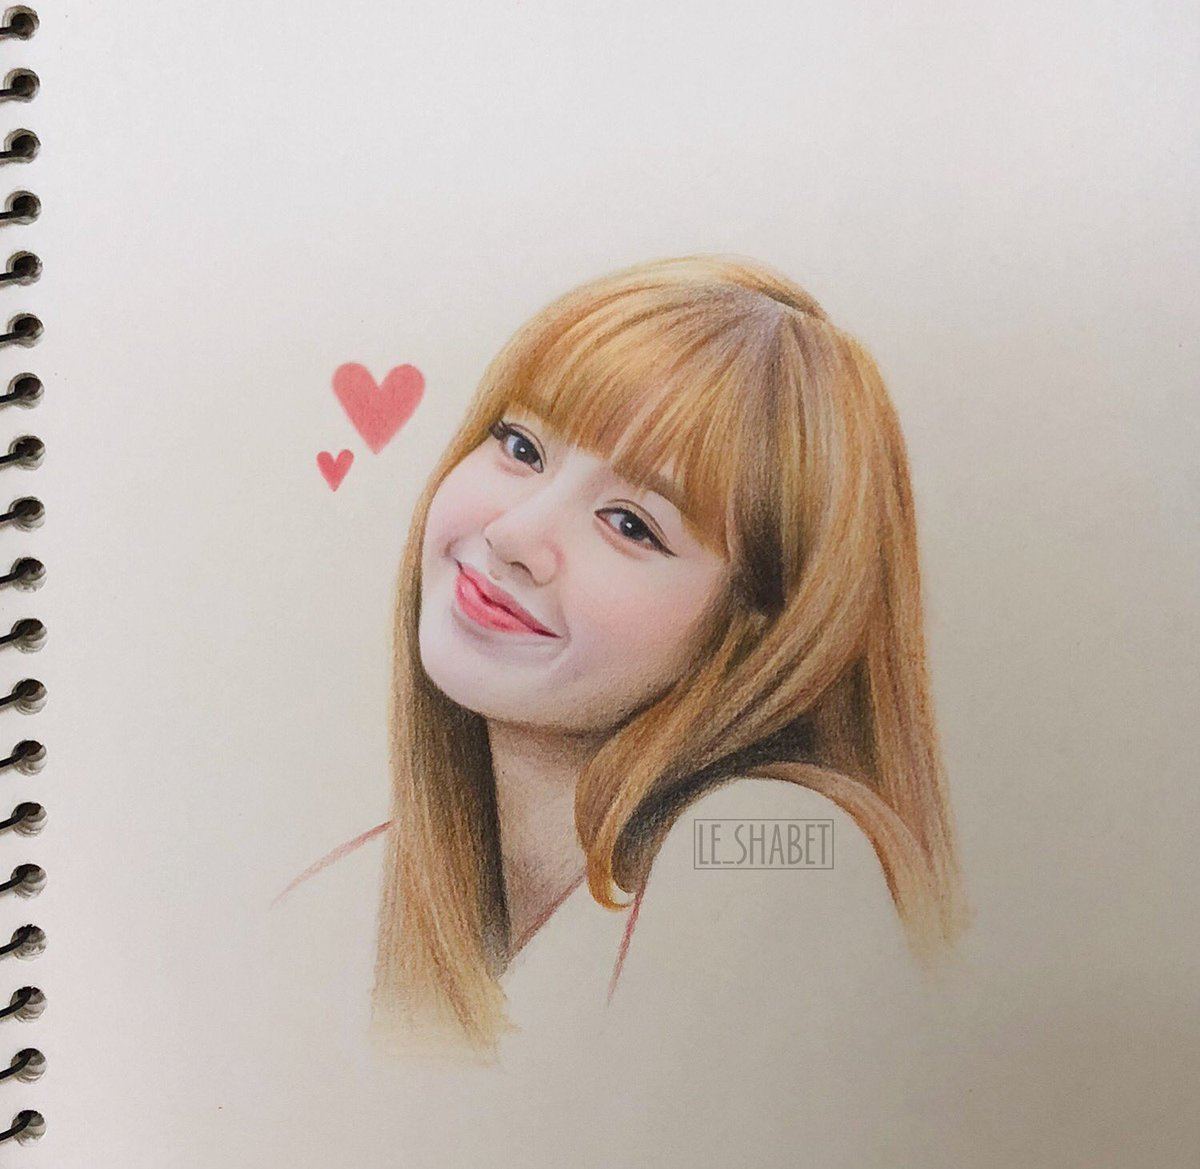 My fan art of Lisa, hope to see our girls comeback soon again!! #blackpink #lisa #blackpinklisa #블랙핑크 #리사 #lisafanart #blackpinkfanart